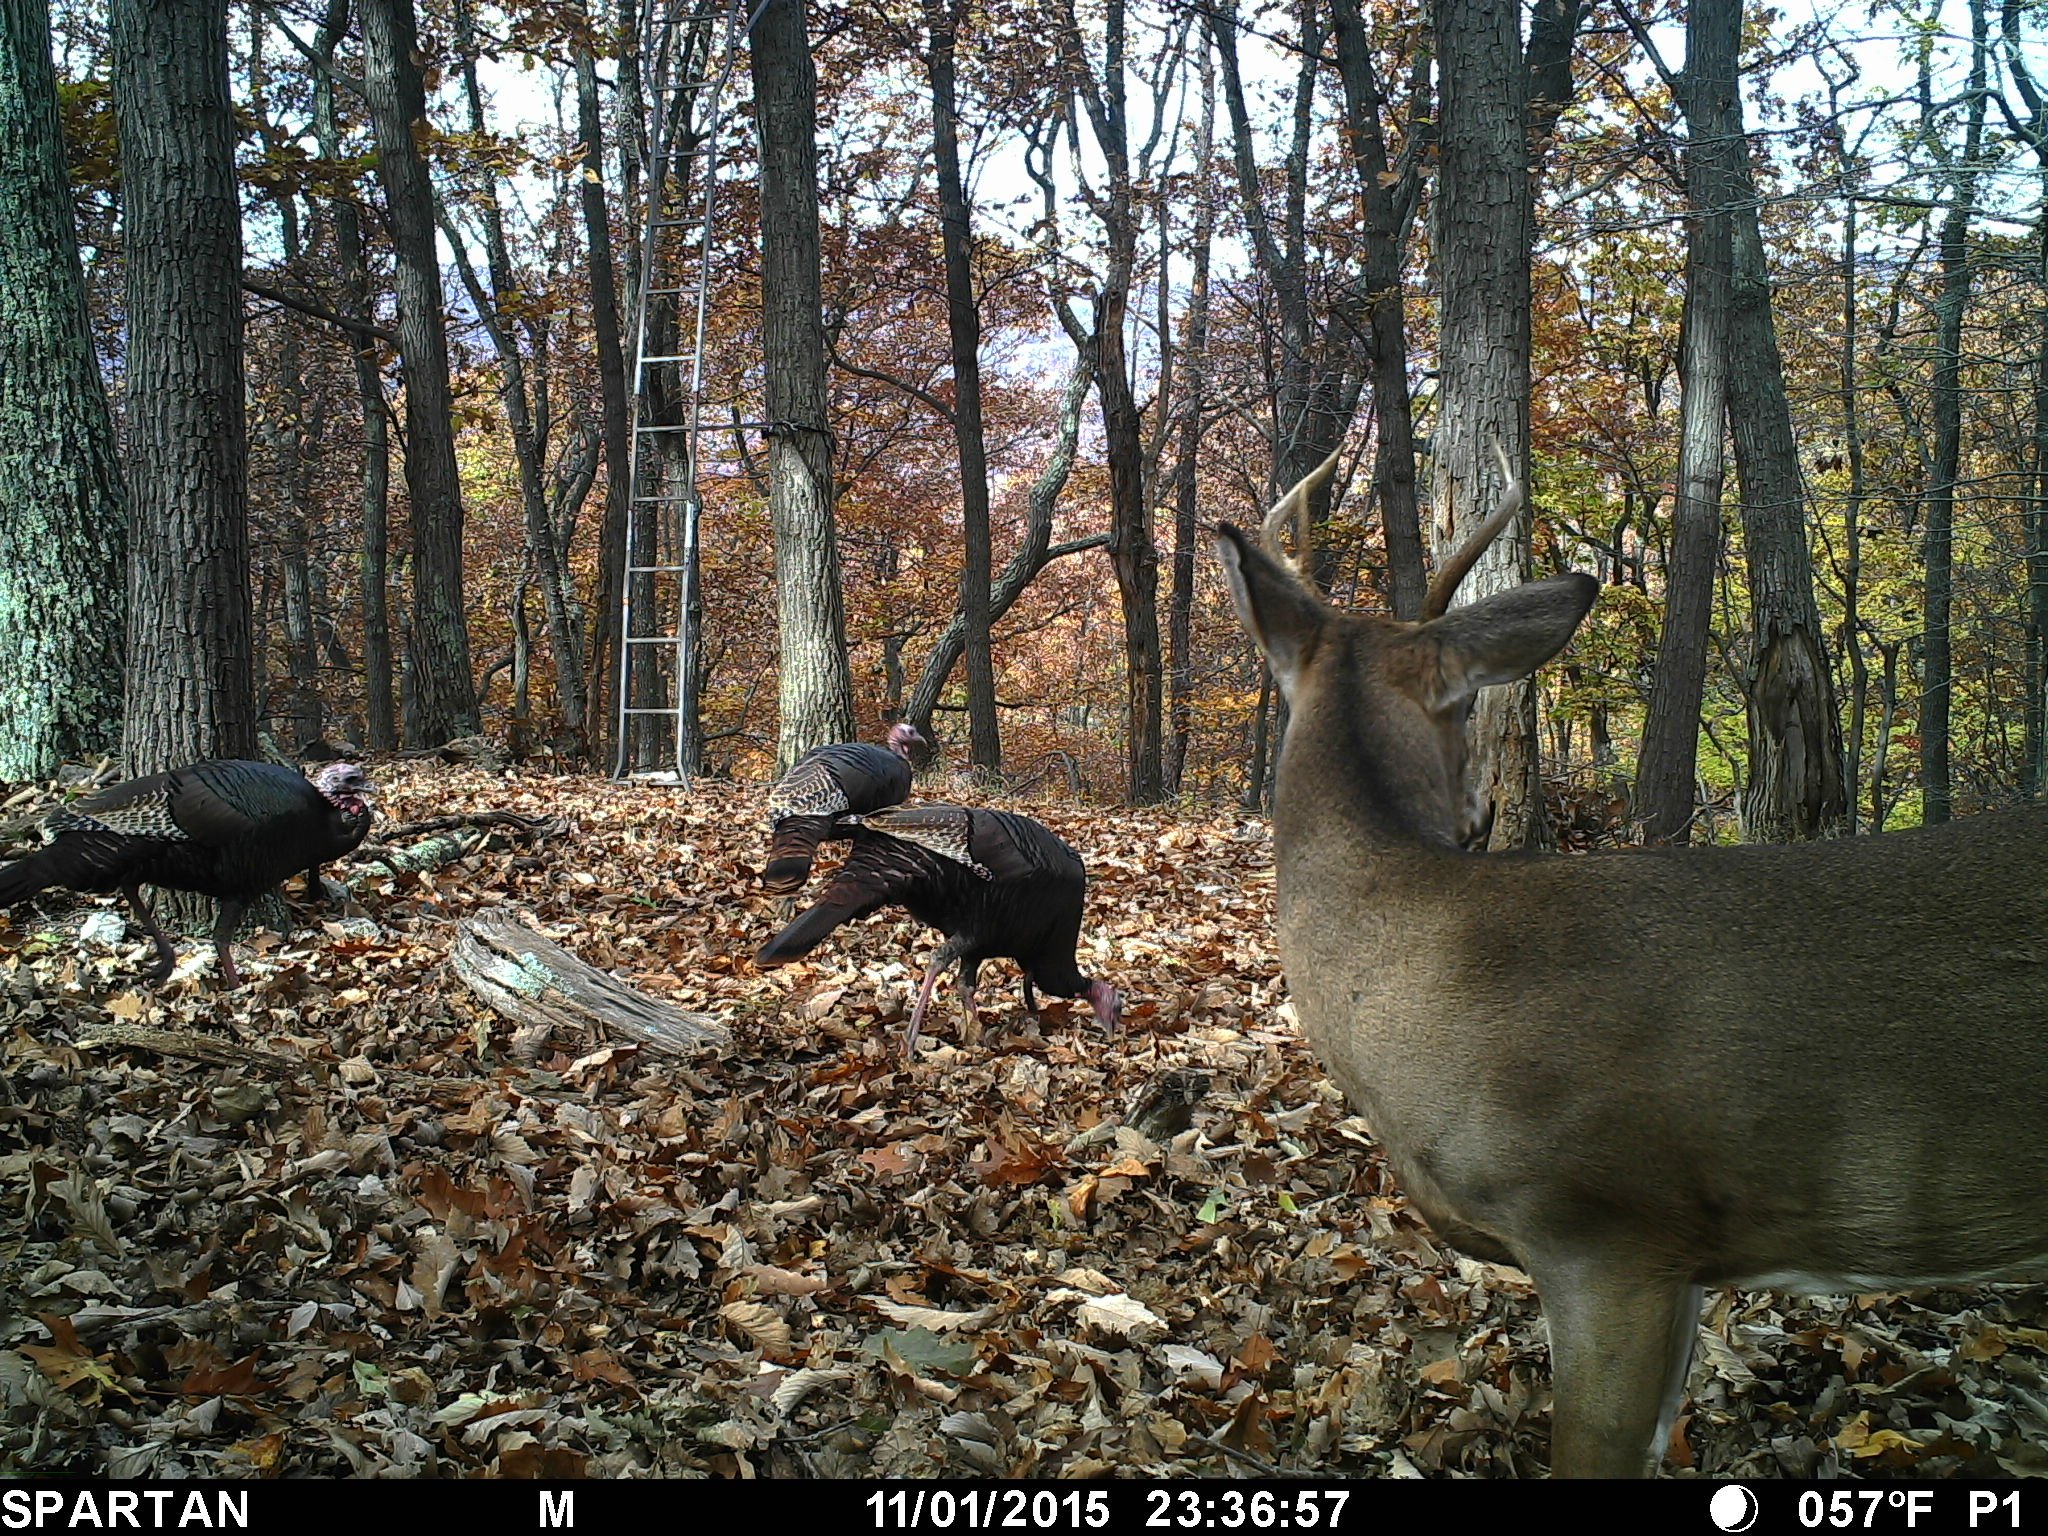 Early Fall Wallpaper Will Wild Turkey Scare Deer The Pictures Don T Lie The